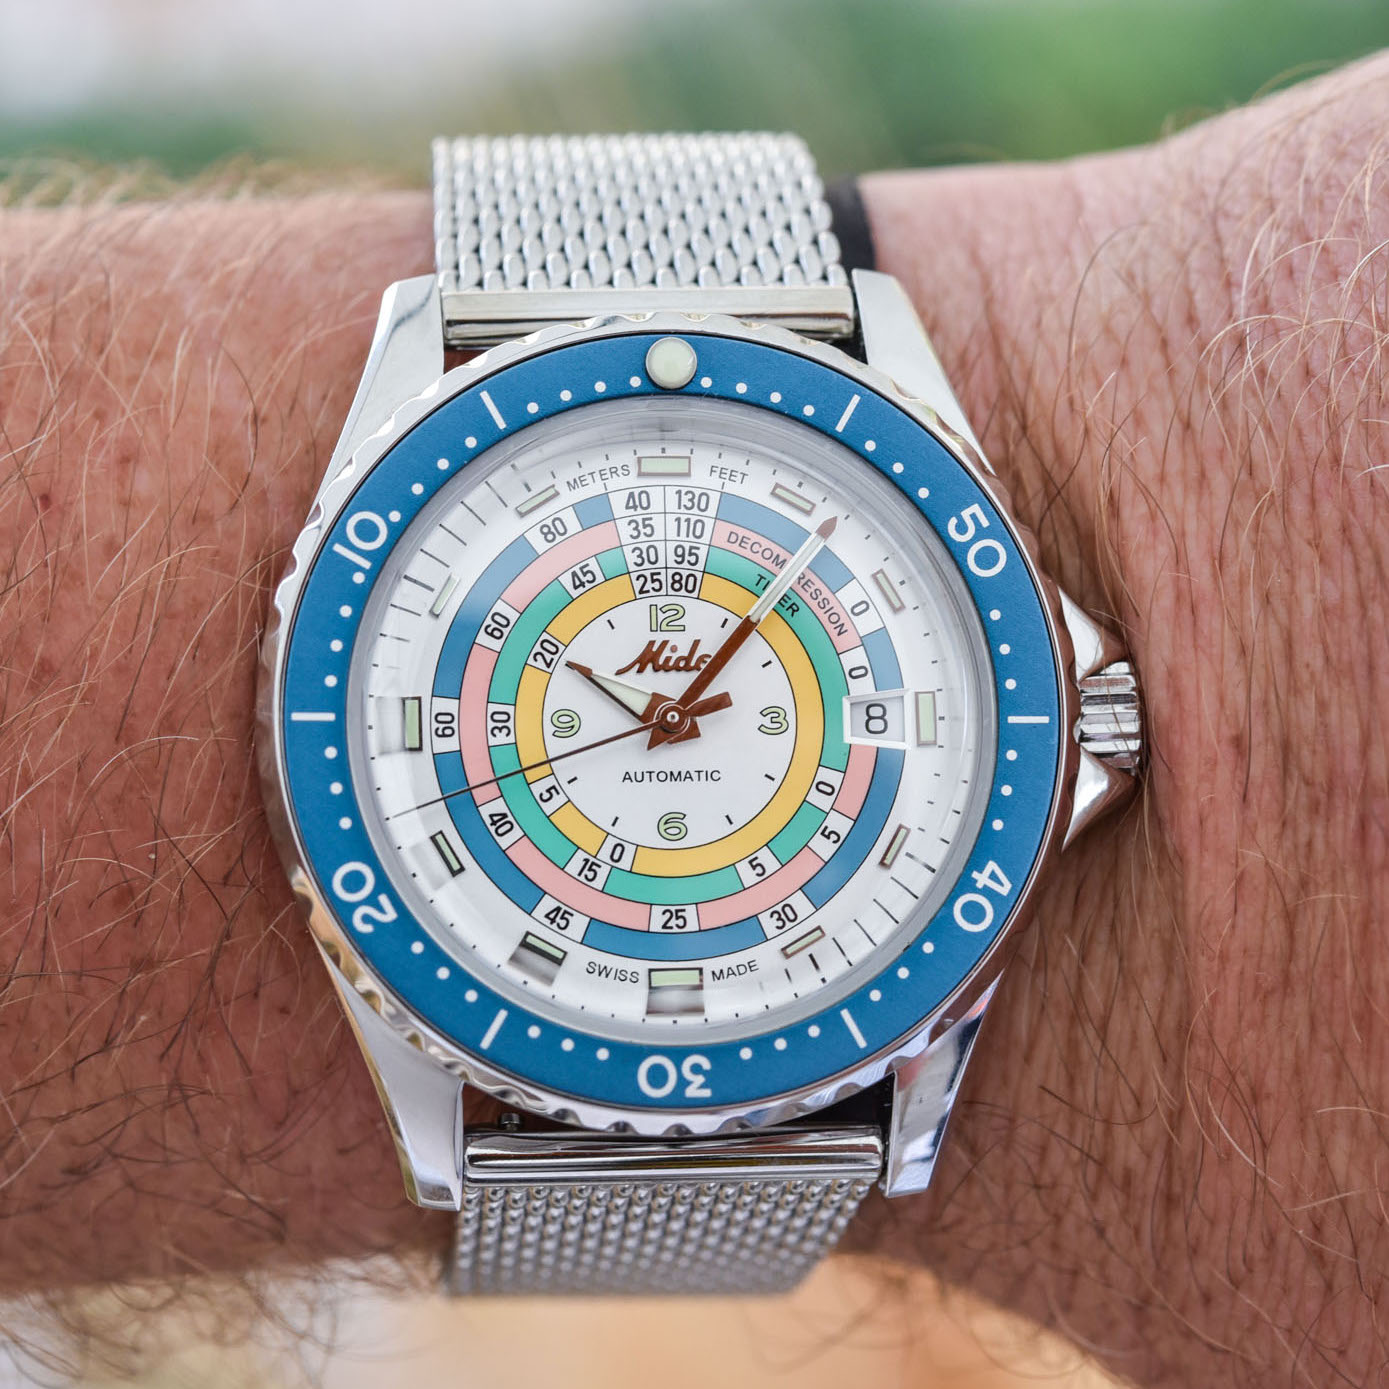 Mido Ocean Star Decompression Timer 1961 Turquoise - M026.807.11.031.00 - hands-on review - 11